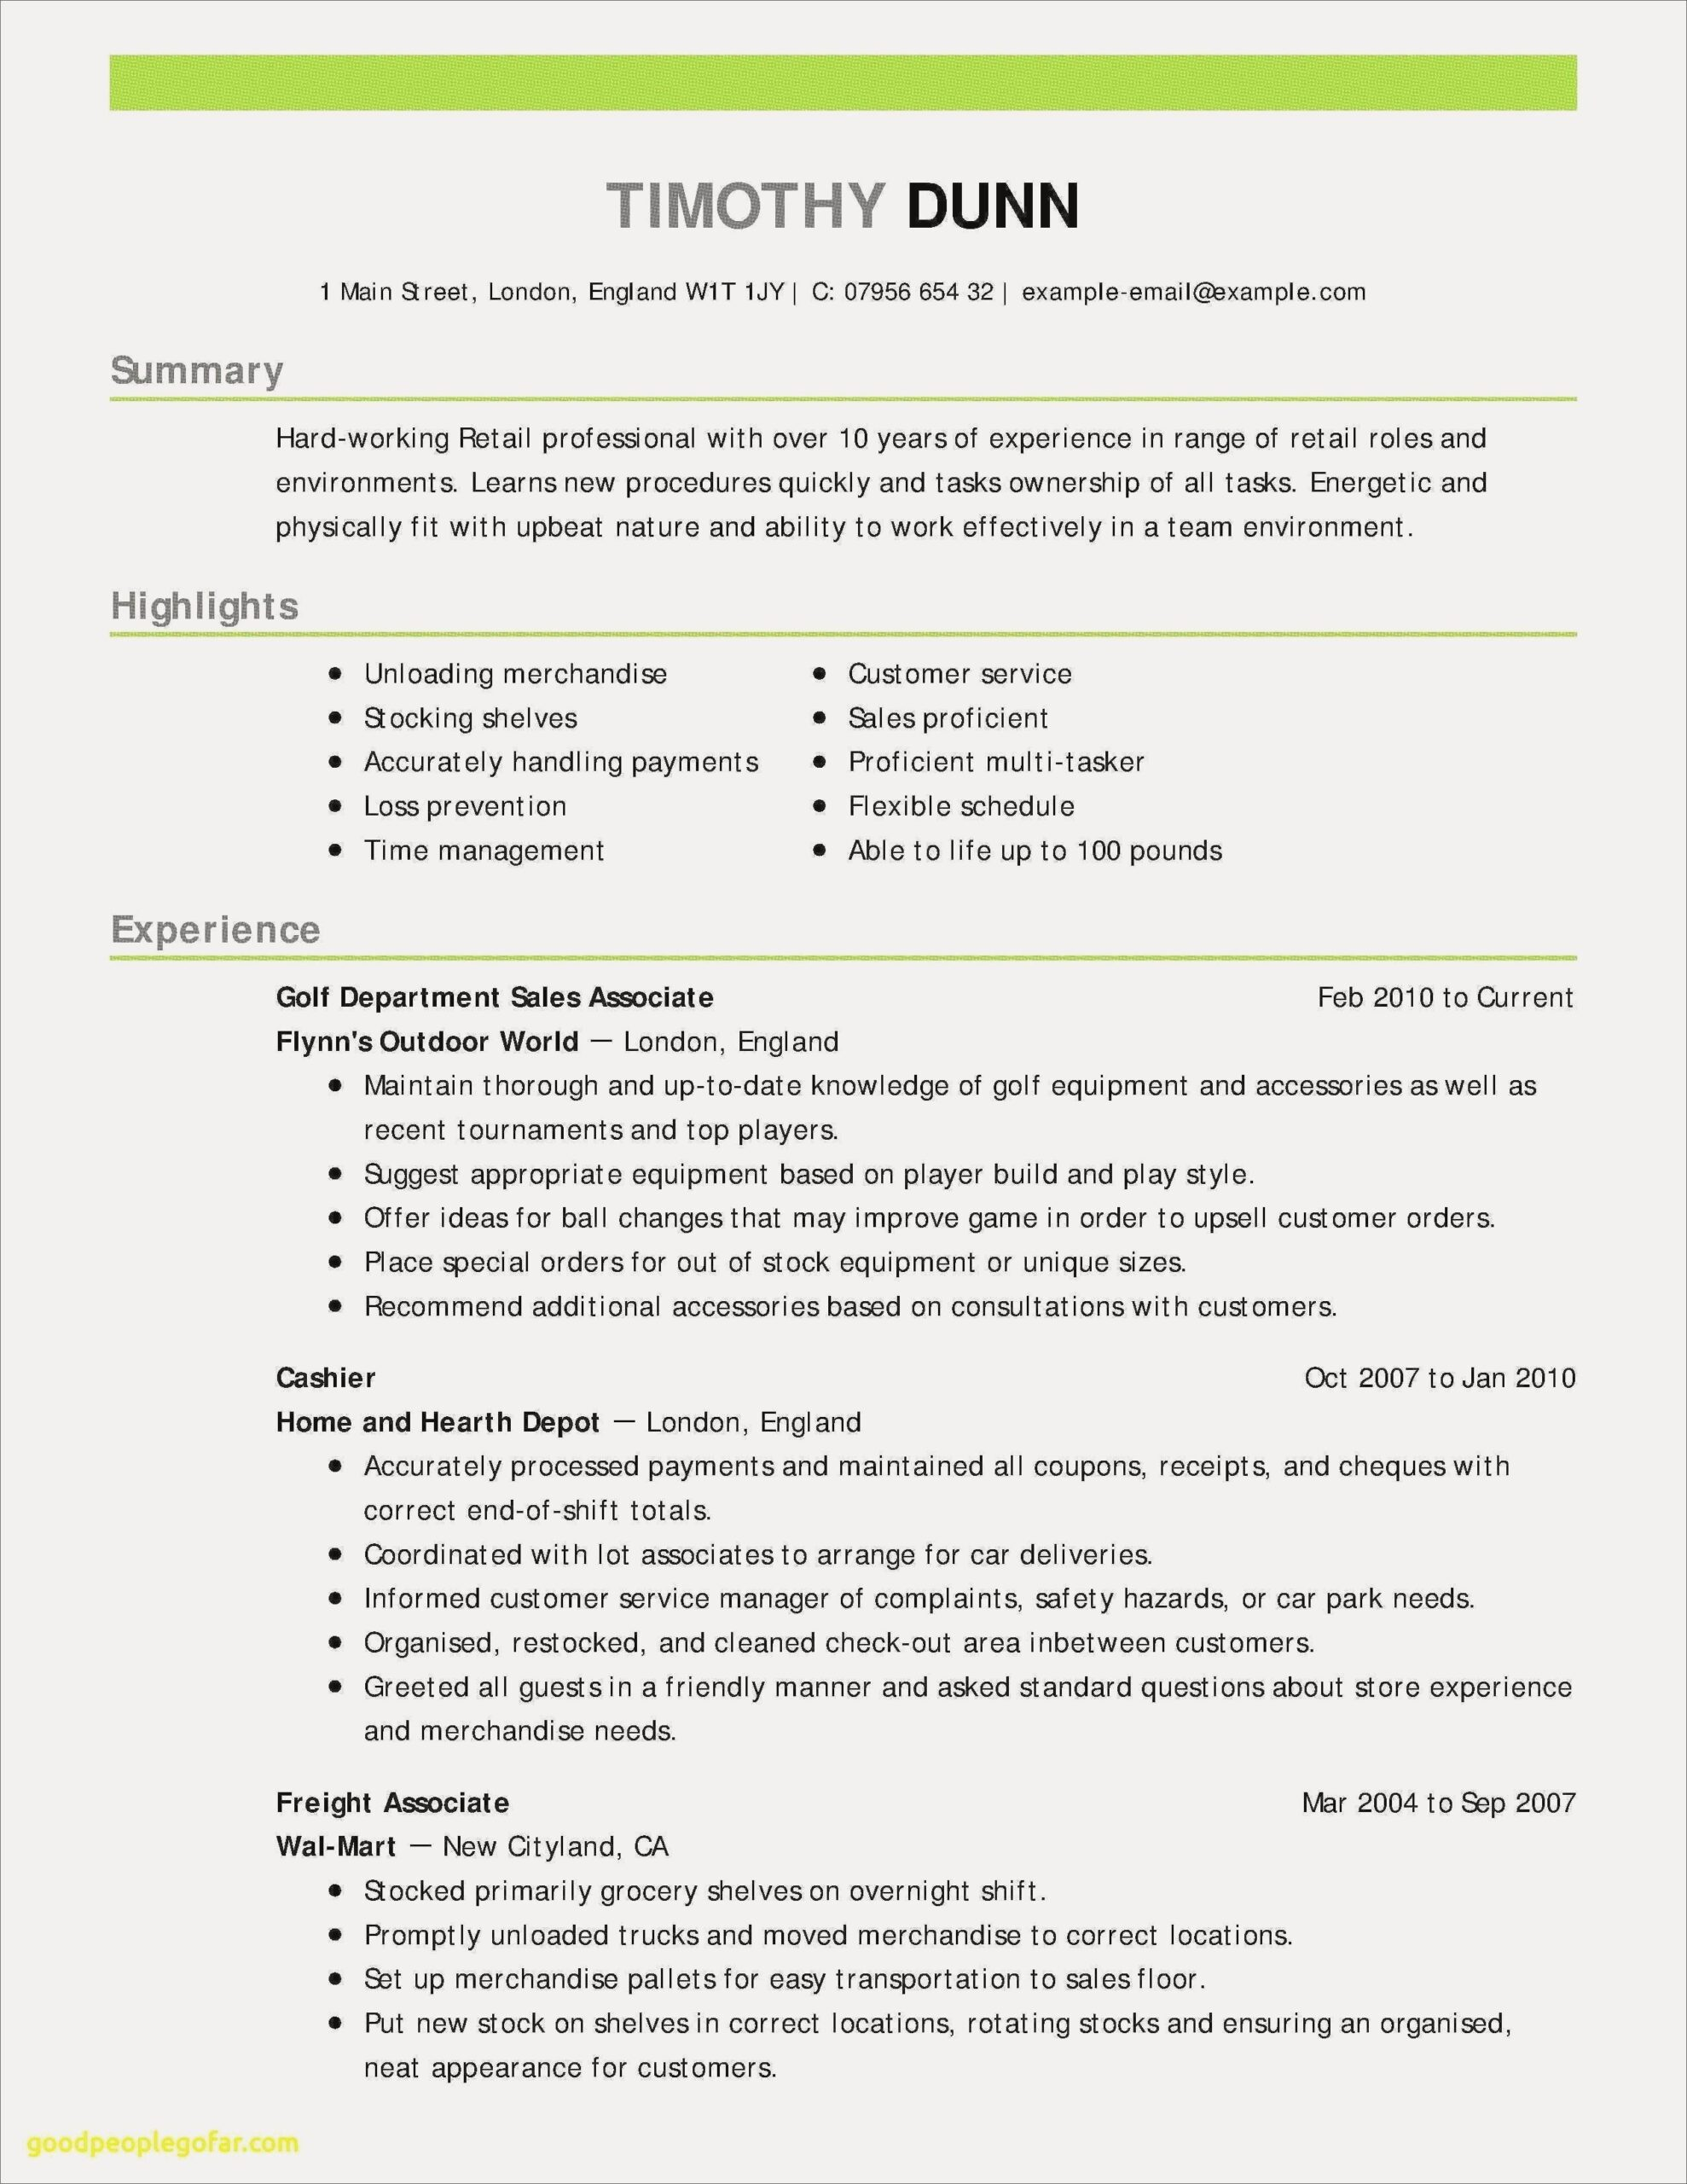 customer service manager resume sample beautiful retail examples objective good skills to Resume Skills To Put On Resume For Customer Service